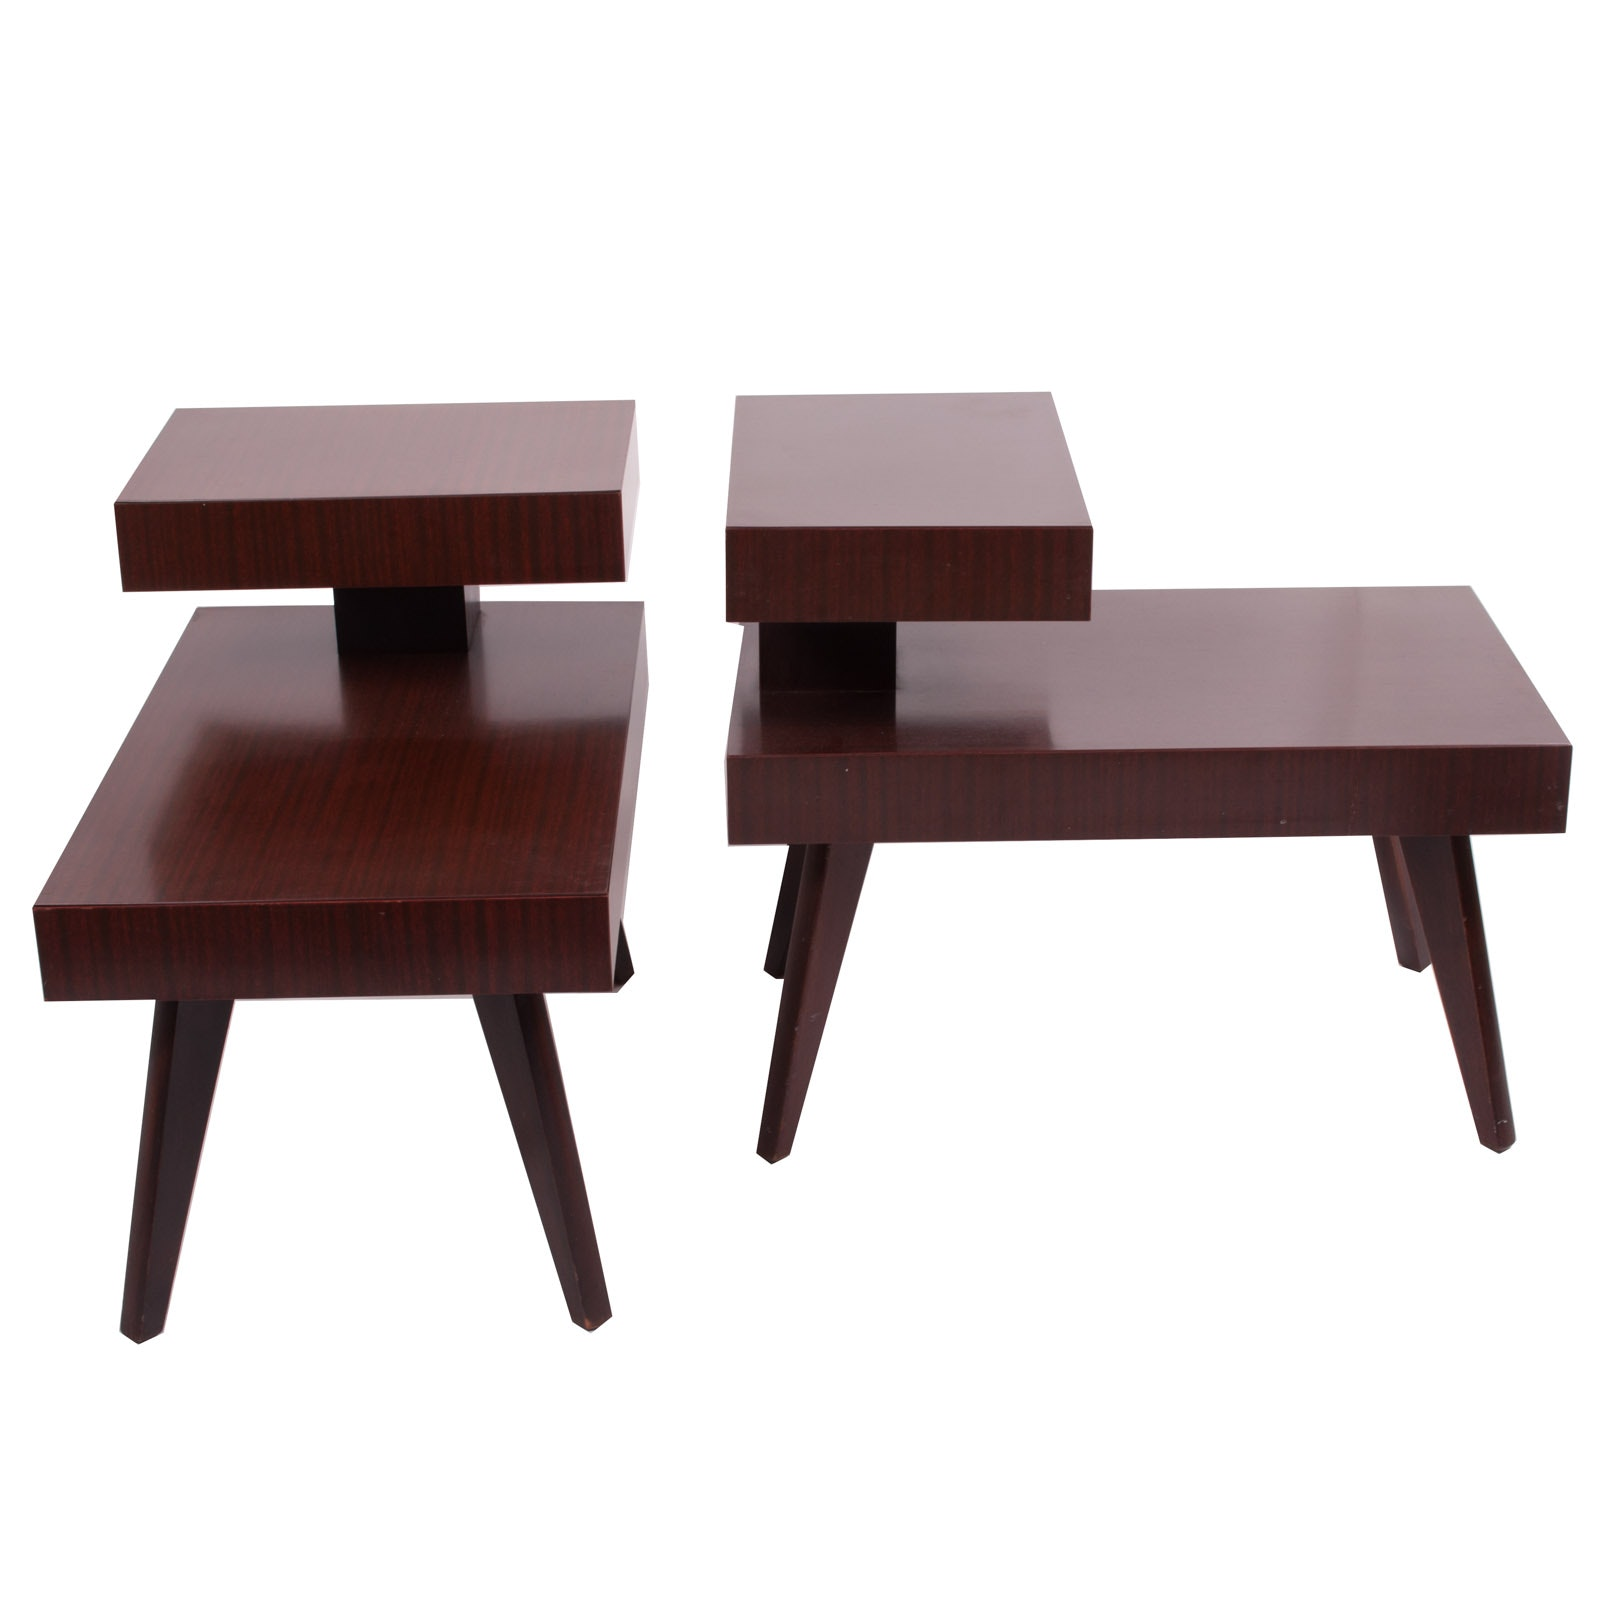 Pair of Mid Century Modern Tiered Laminate Side Tables by Philcraft